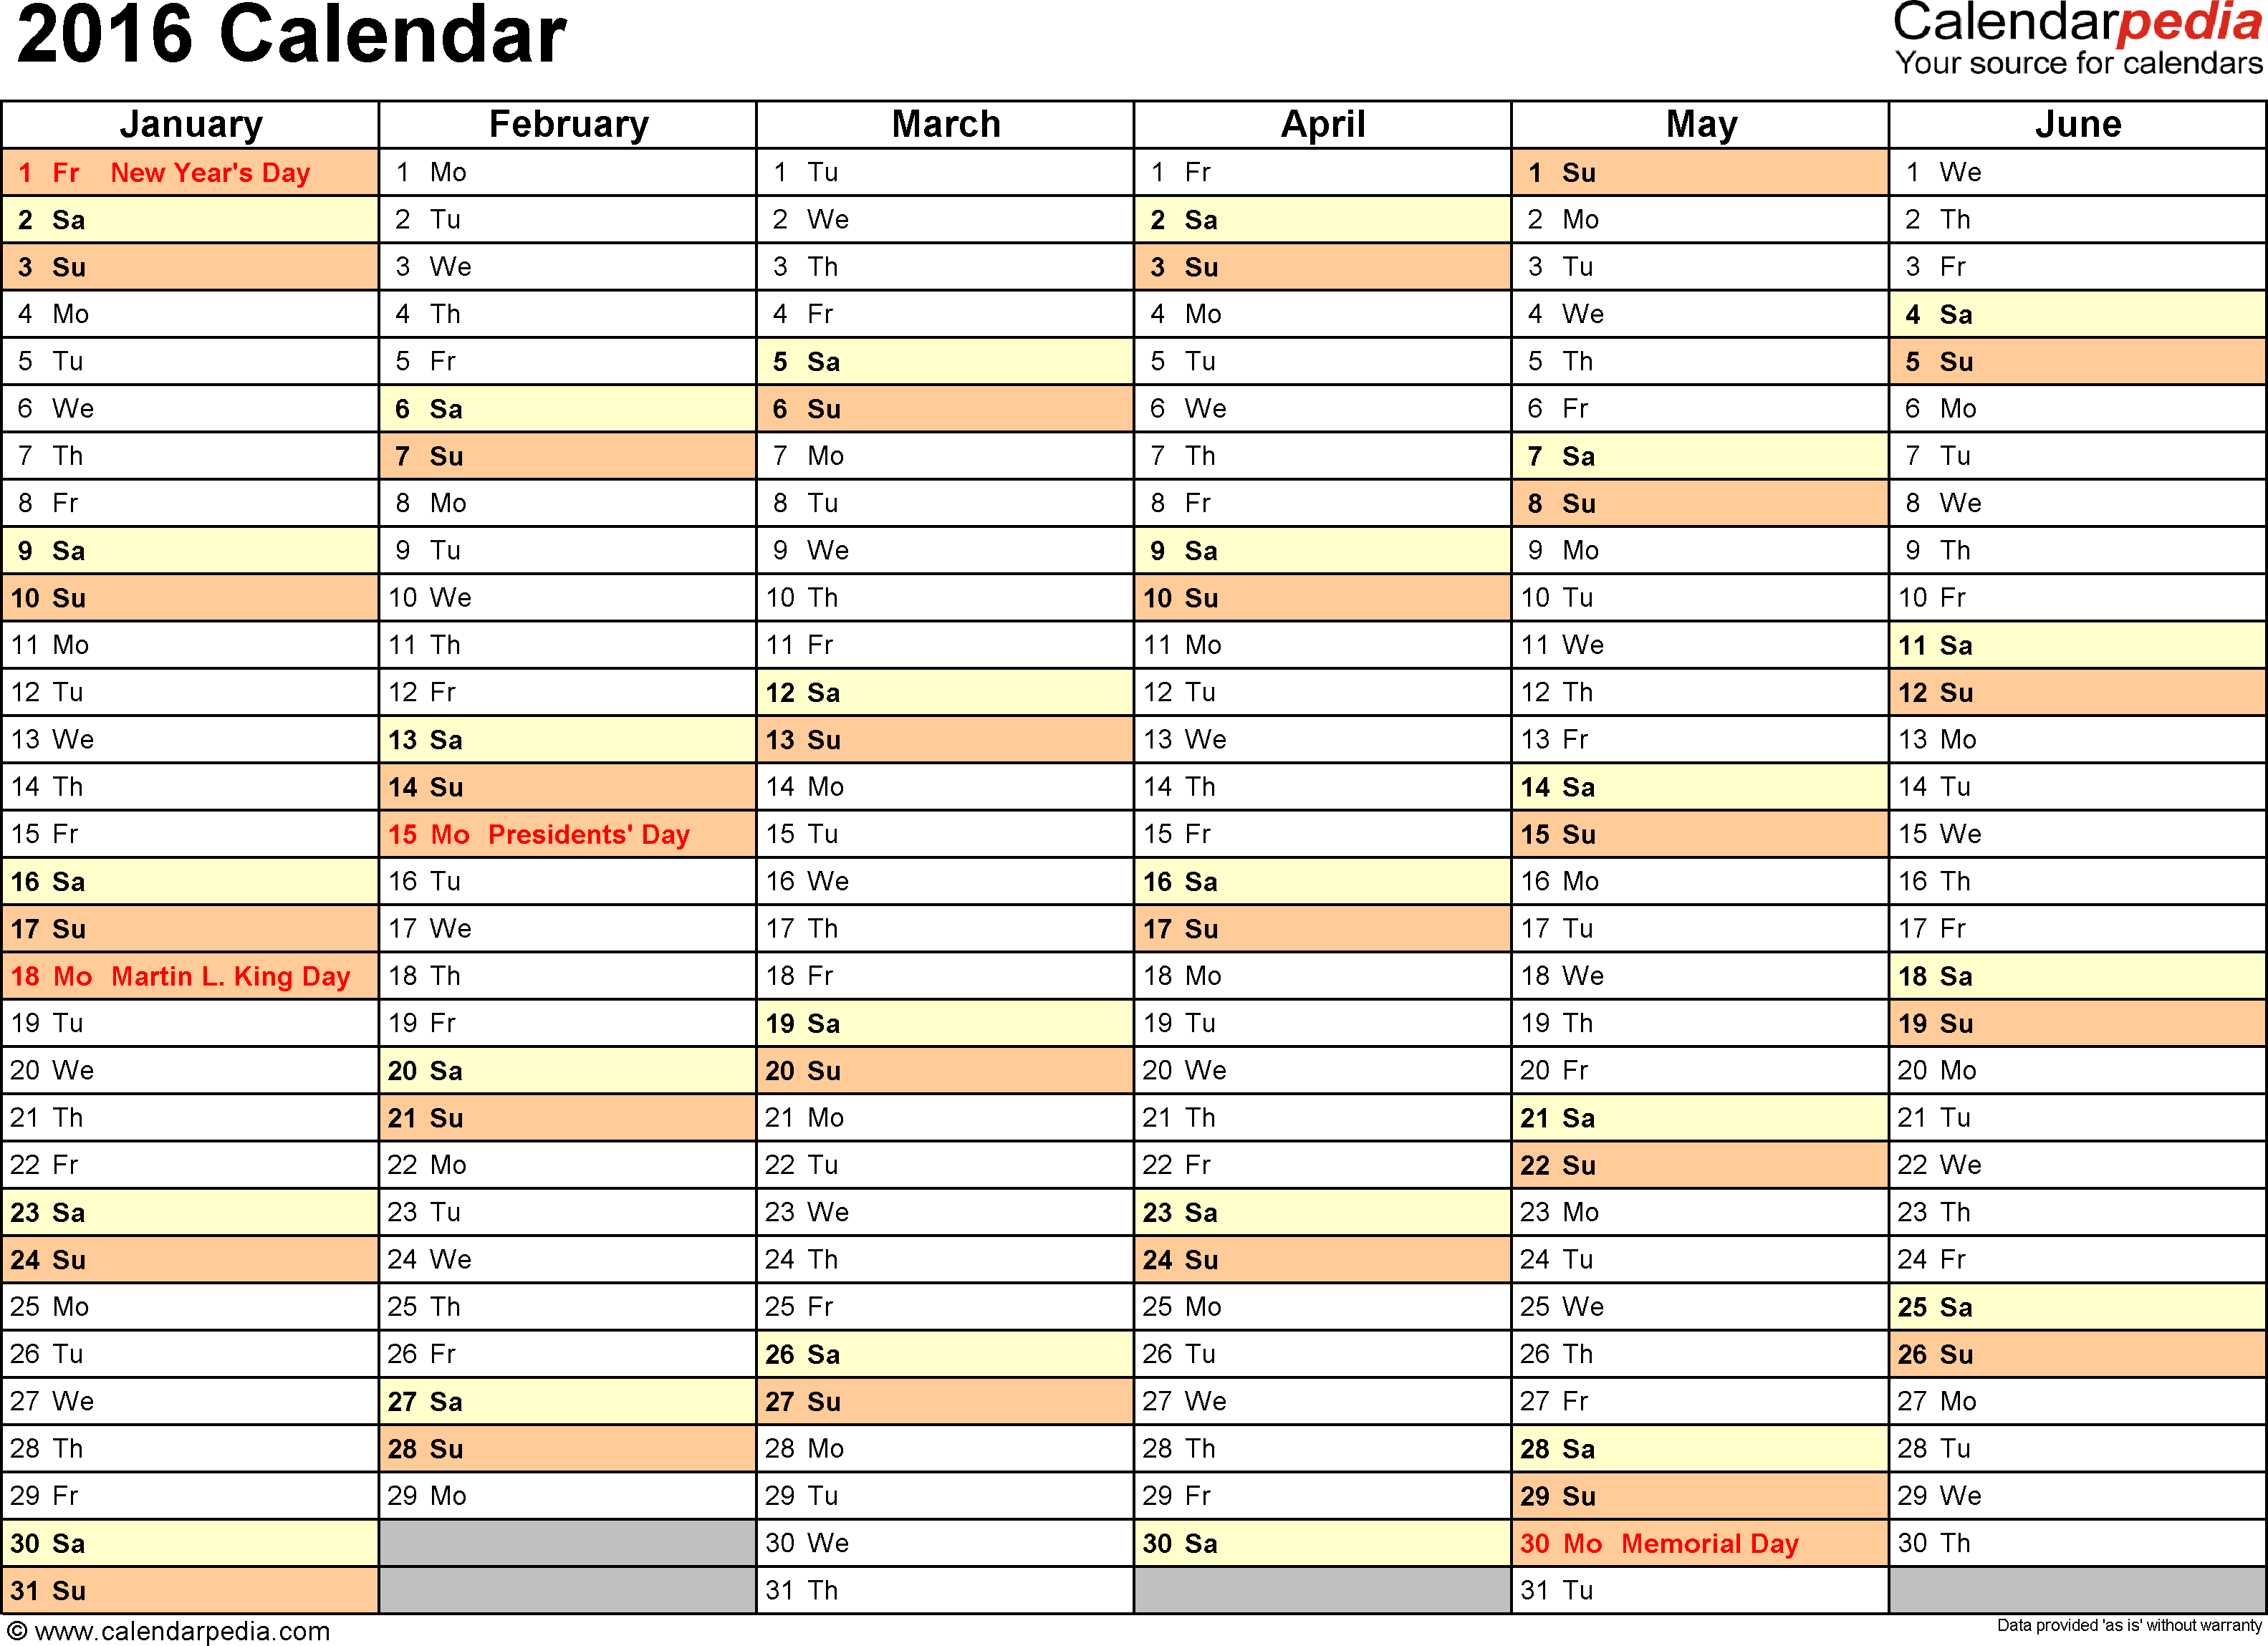 Ediblewildsus  Remarkable  Calendar  Download  Free Printable Excel Templates Xls With Great Template   Calendar For Excel Months Horizontally  Pages Landscape Orientation With Divine Data Labels In Excel Also Excel Chart Axis In Addition Excel Fill Handle Not Working And Excel Div As Well As Excel Conditional Formatting Date Additionally How To Create A Report In Excel  From Calendarpediacom With Ediblewildsus  Great  Calendar  Download  Free Printable Excel Templates Xls With Divine Template   Calendar For Excel Months Horizontally  Pages Landscape Orientation And Remarkable Data Labels In Excel Also Excel Chart Axis In Addition Excel Fill Handle Not Working From Calendarpediacom